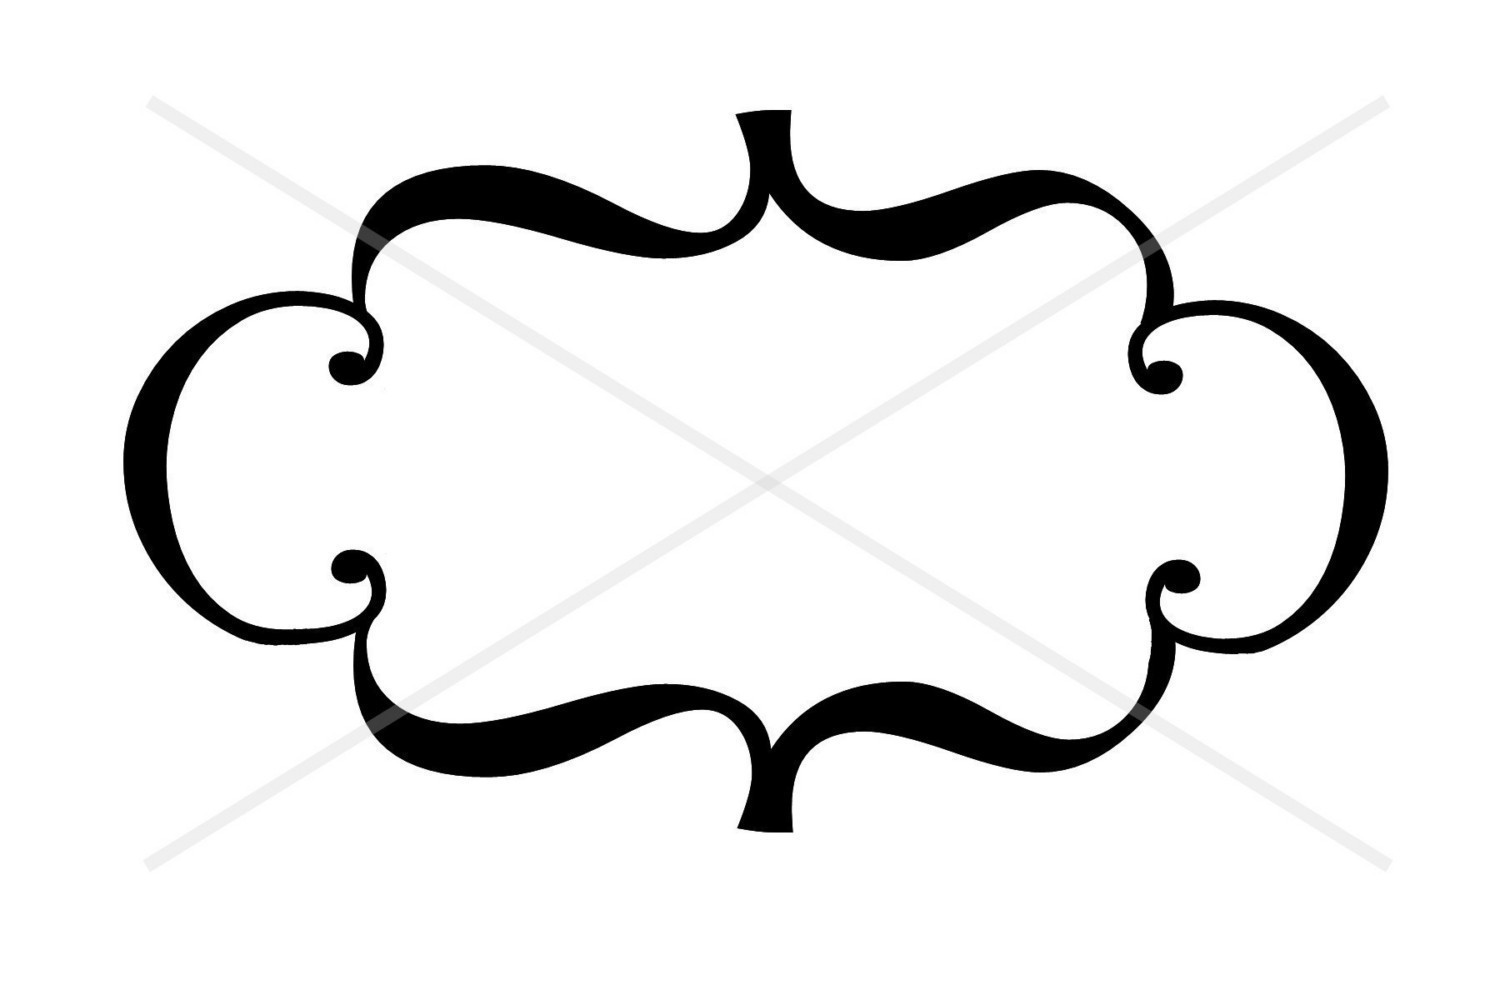 Scroll bracket clipart picture transparent stock Bracket Clipart   Free download best Bracket Clipart on ... picture transparent stock